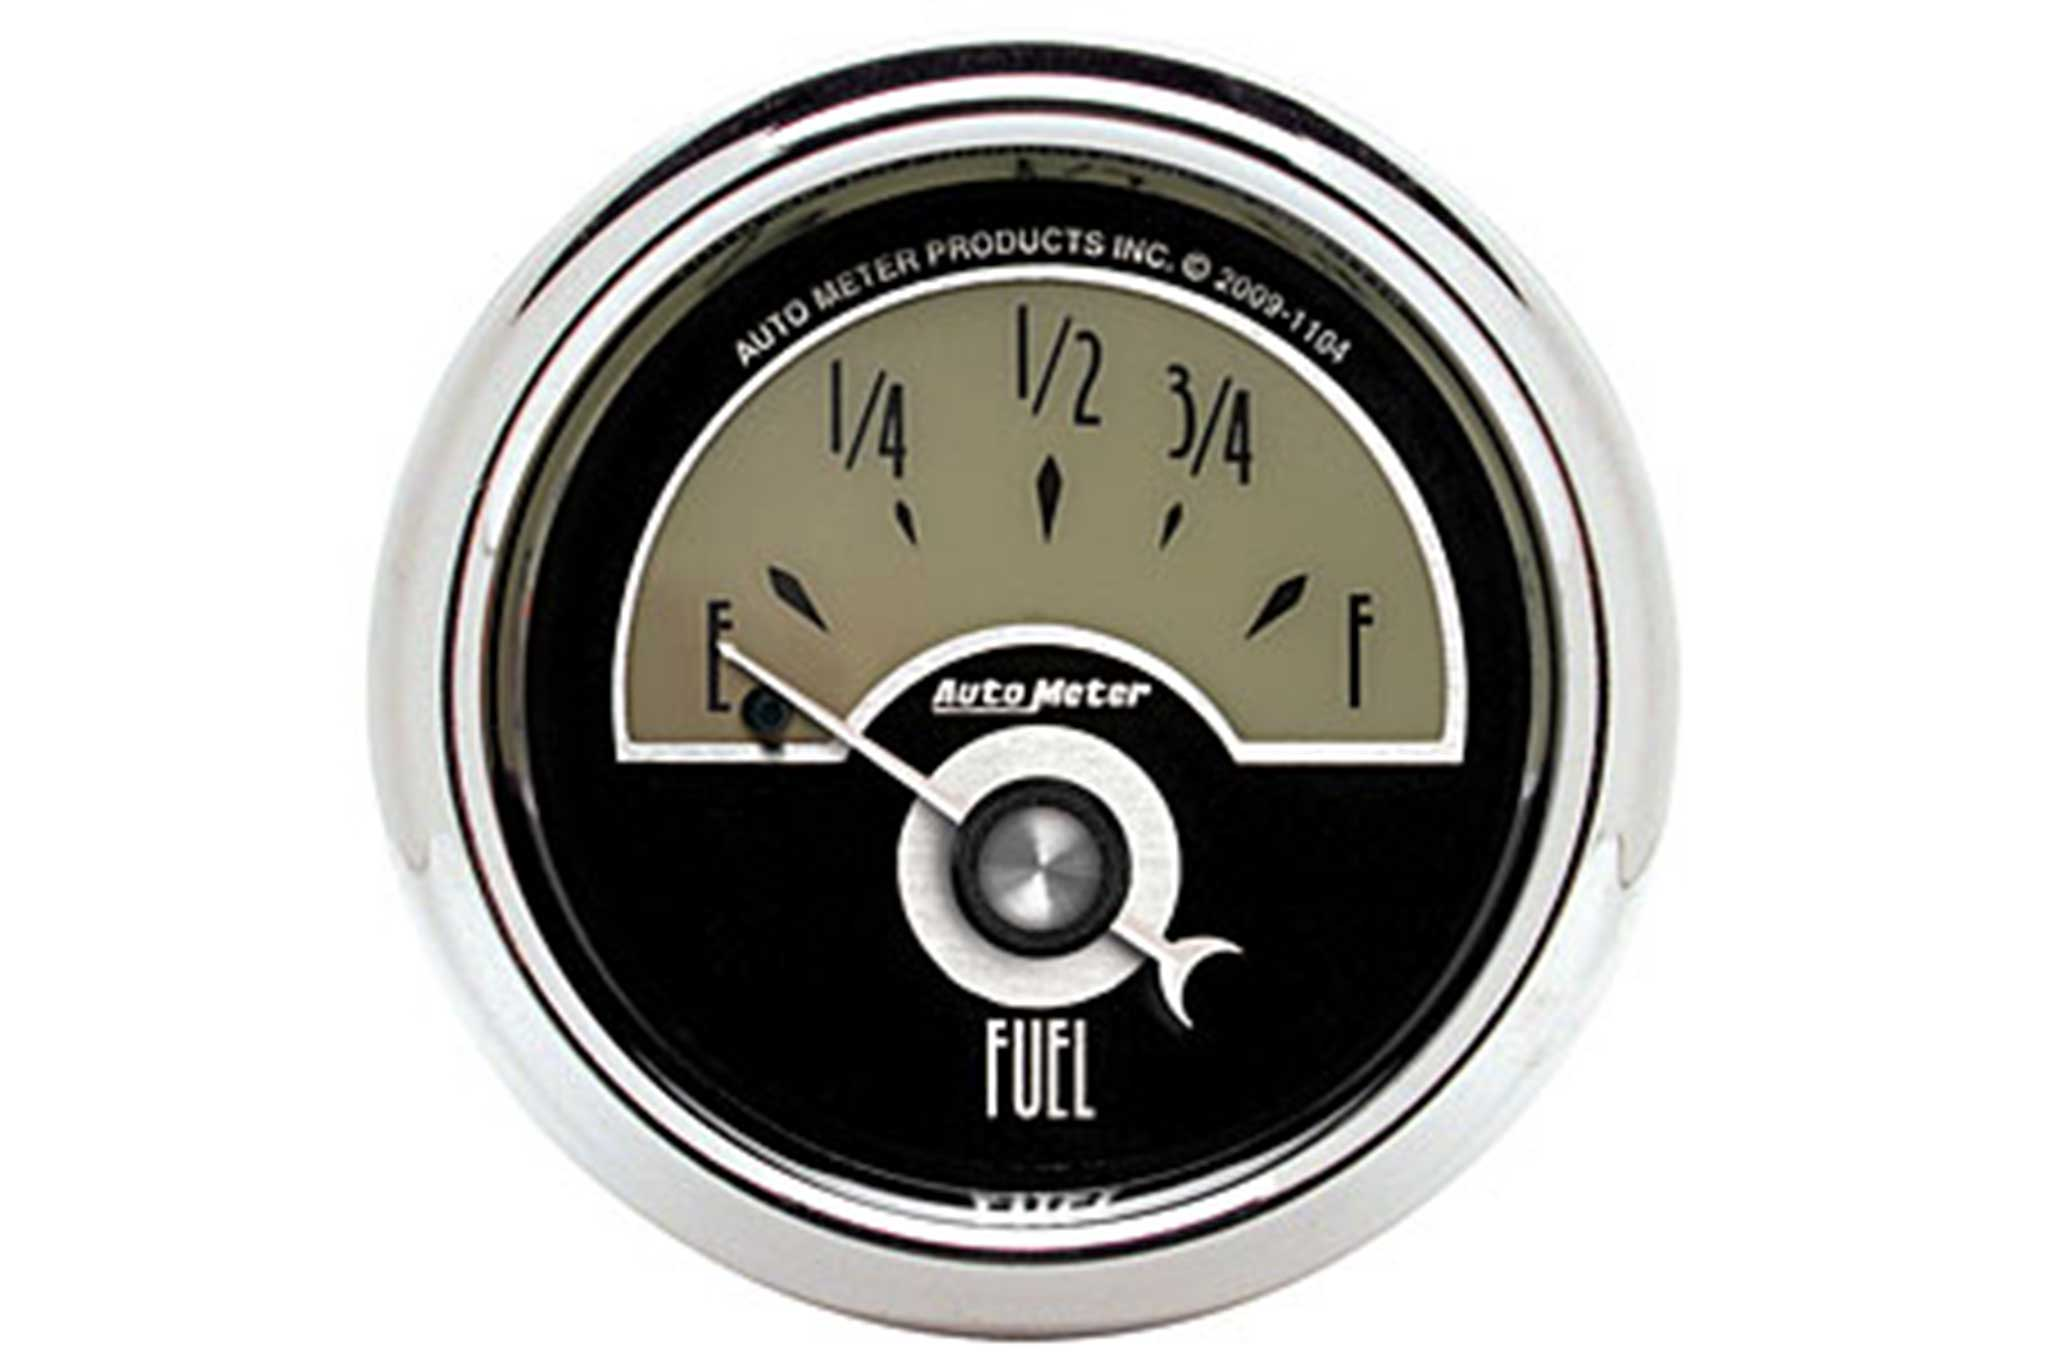 autometer logo. fuel, speed, volts, oil, water, and also a clock to let autometer logo